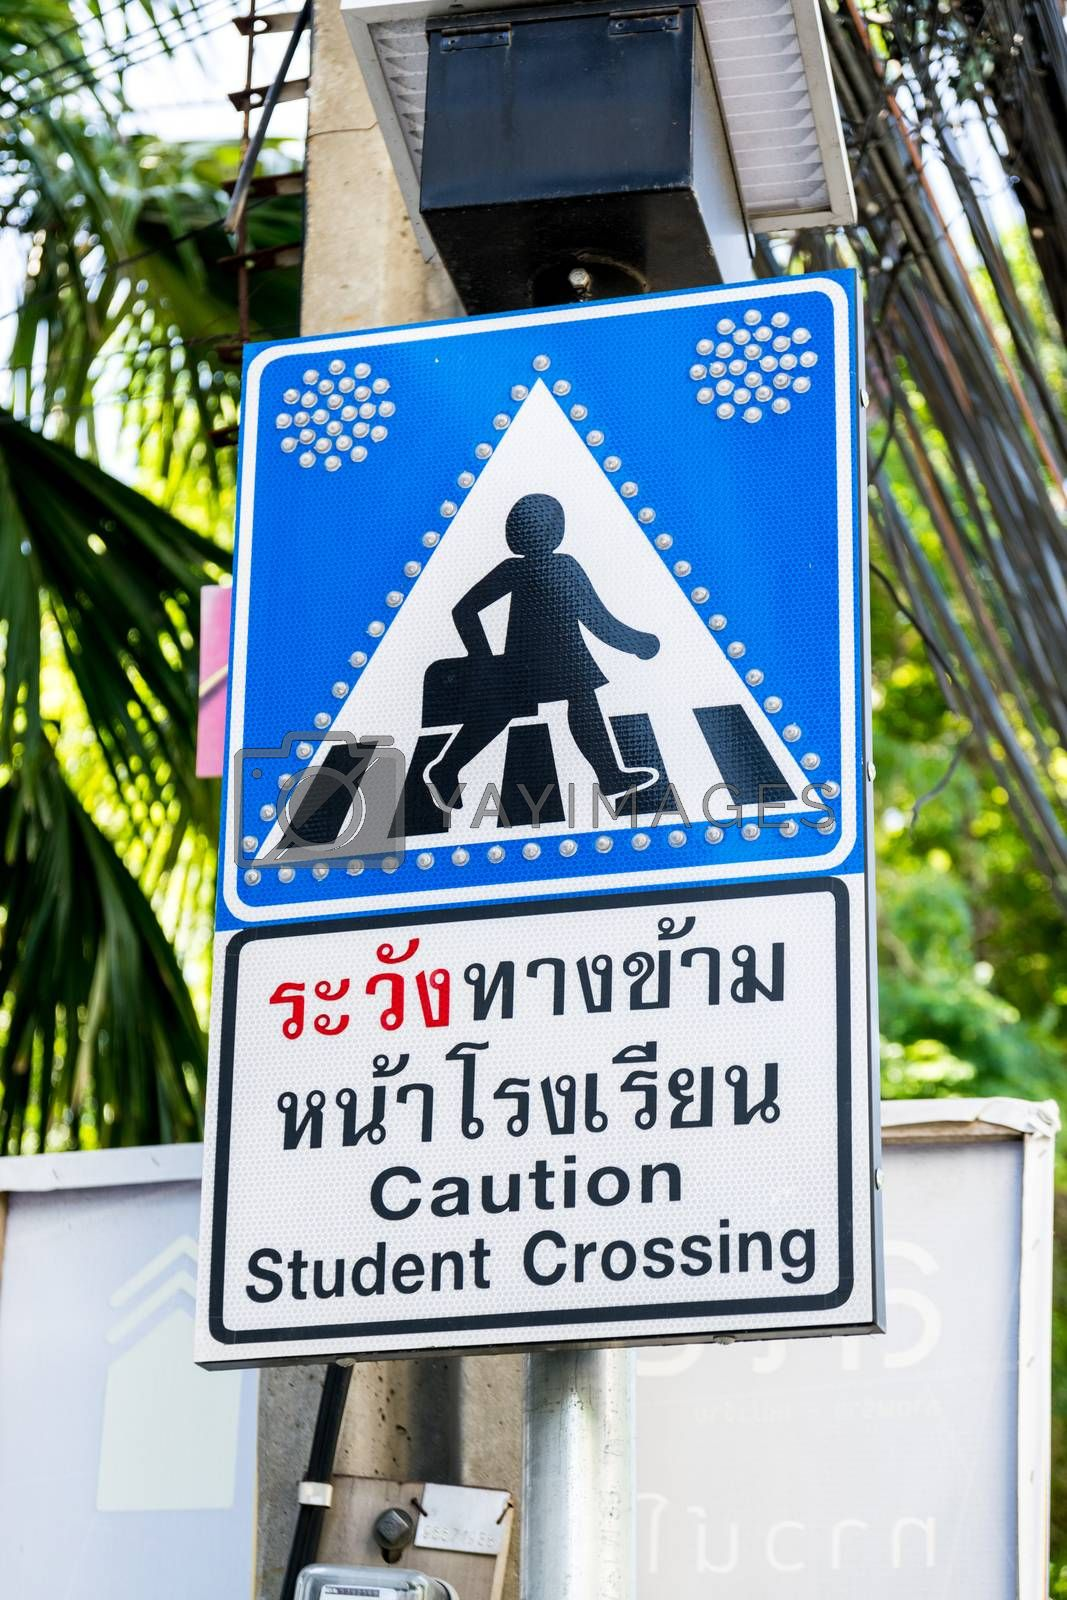 Caution student crossing signboards.